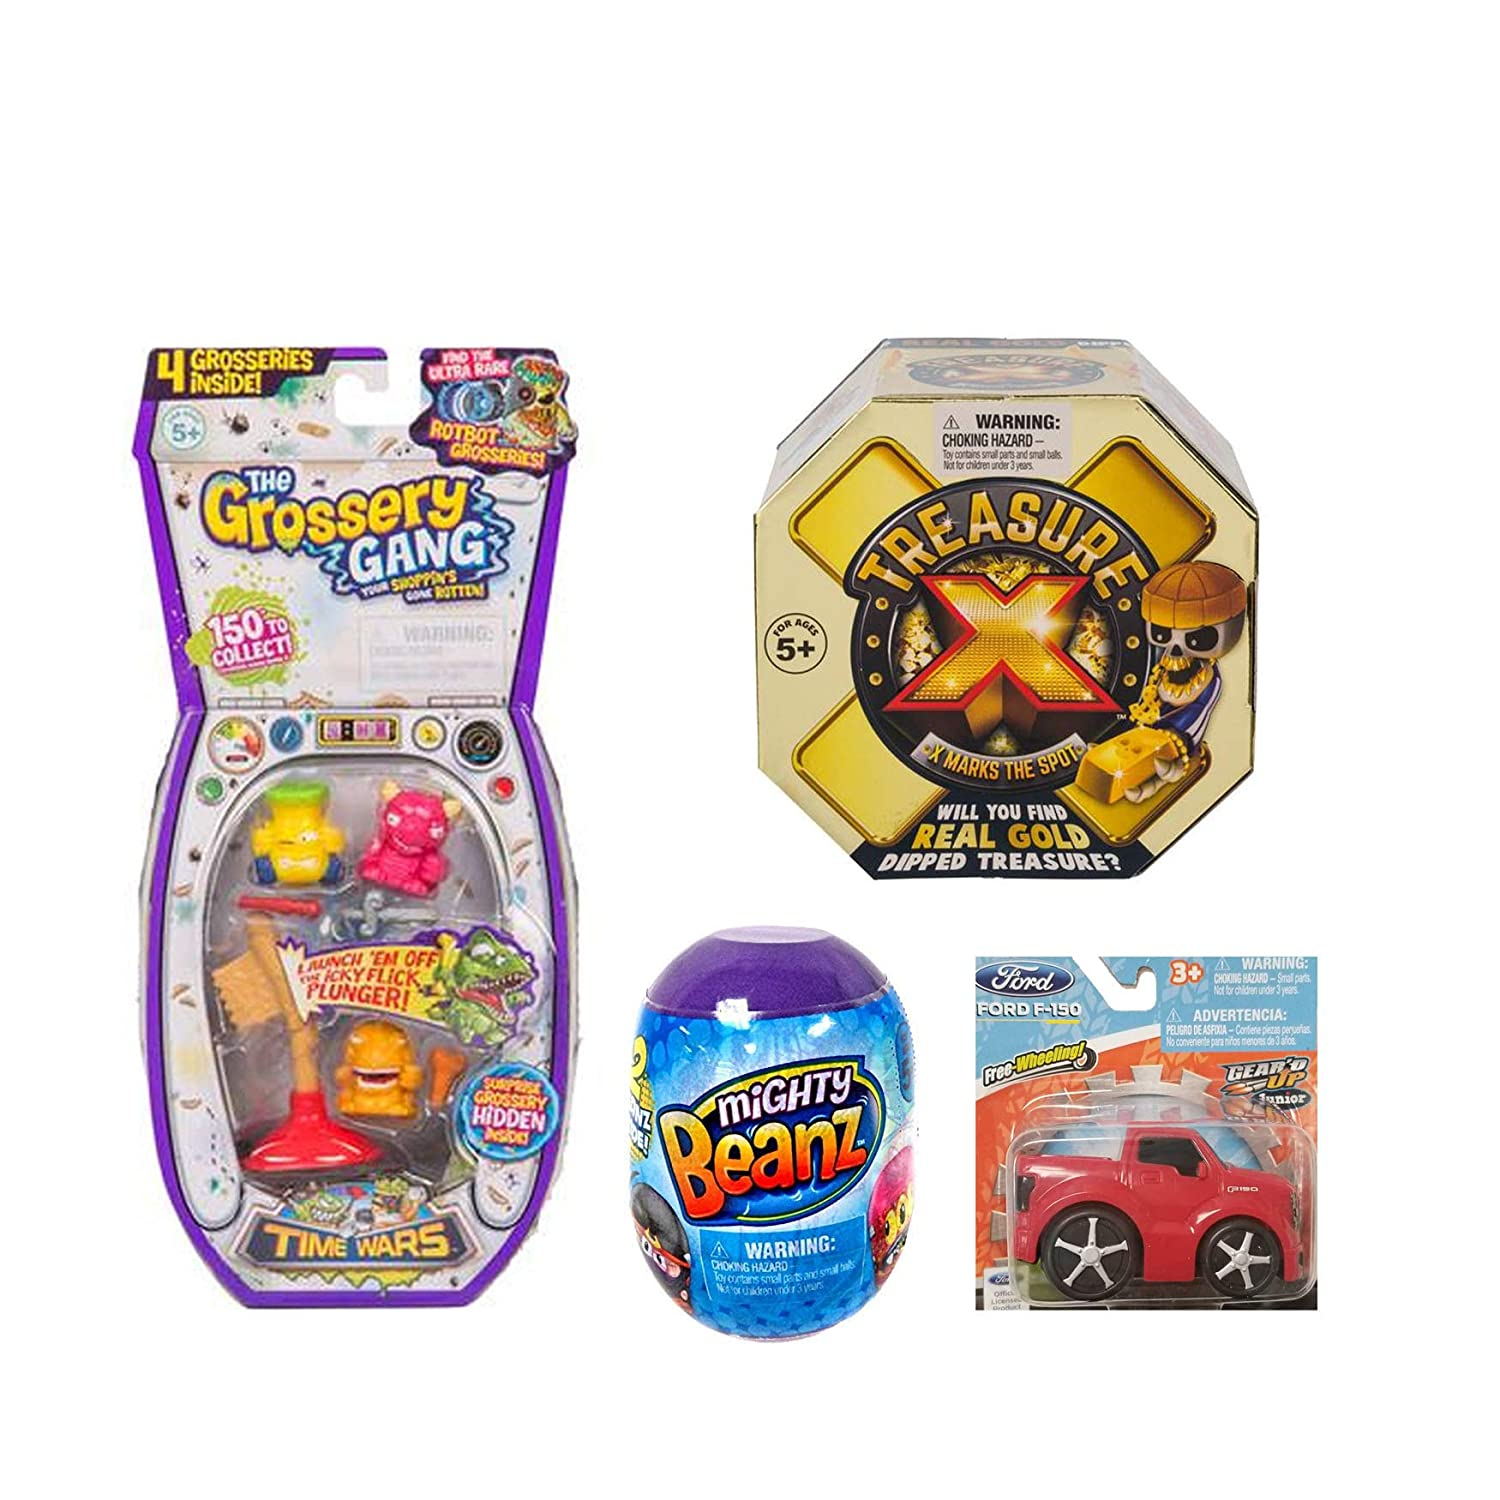 Simple Joy Treasure X and Might Beanz Gift Set for Boys Customized Set